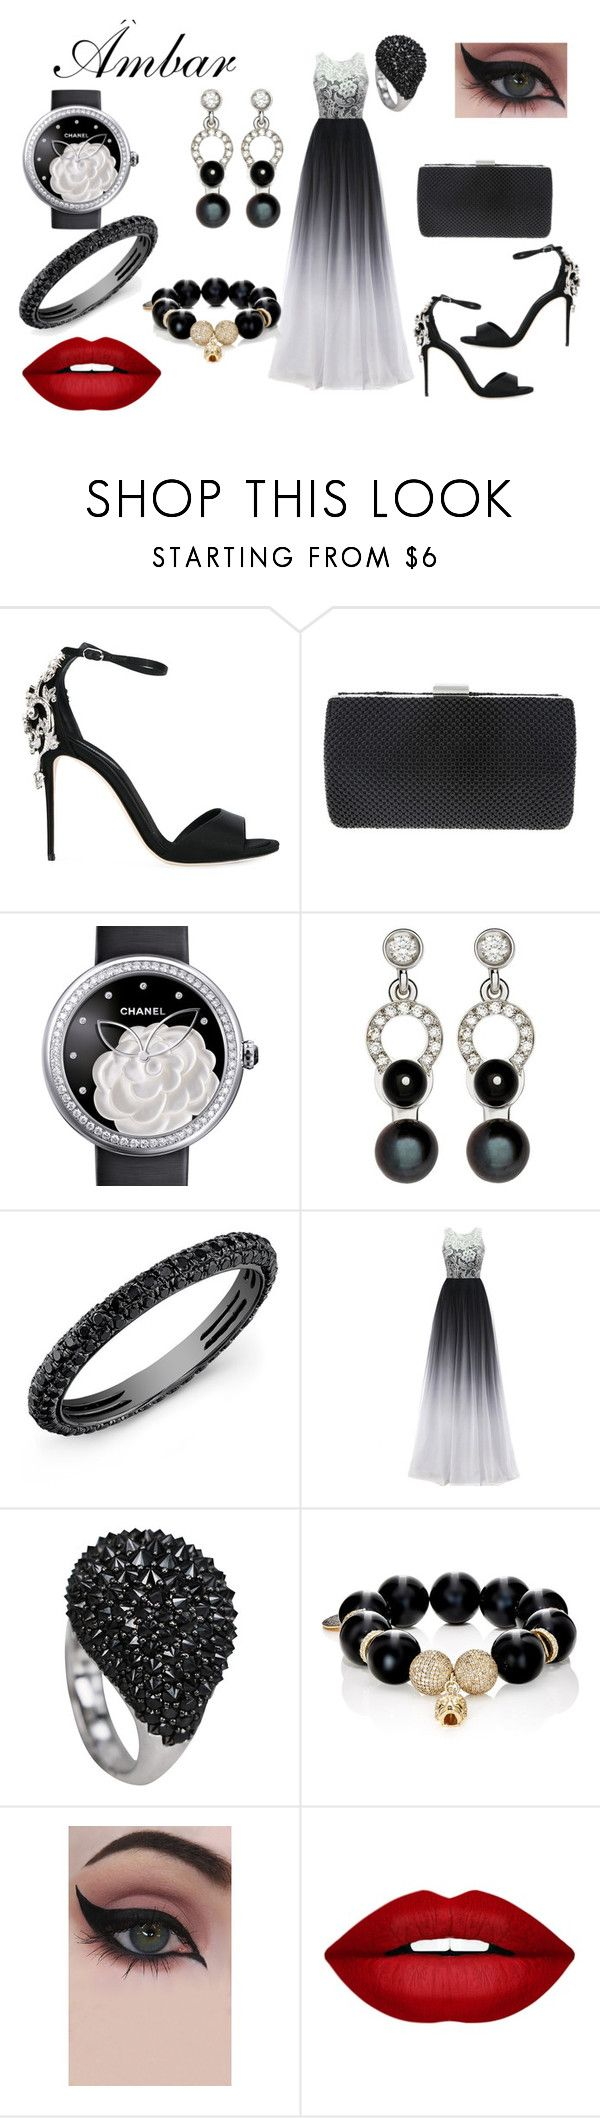 """""""sol antes de luna"""" by love1662002 on Polyvore featuring Dolce&Gabbana, Nina, Chanel, Nathalie Jean, Carole Shashona, Concrete Minerals and Forever 21"""